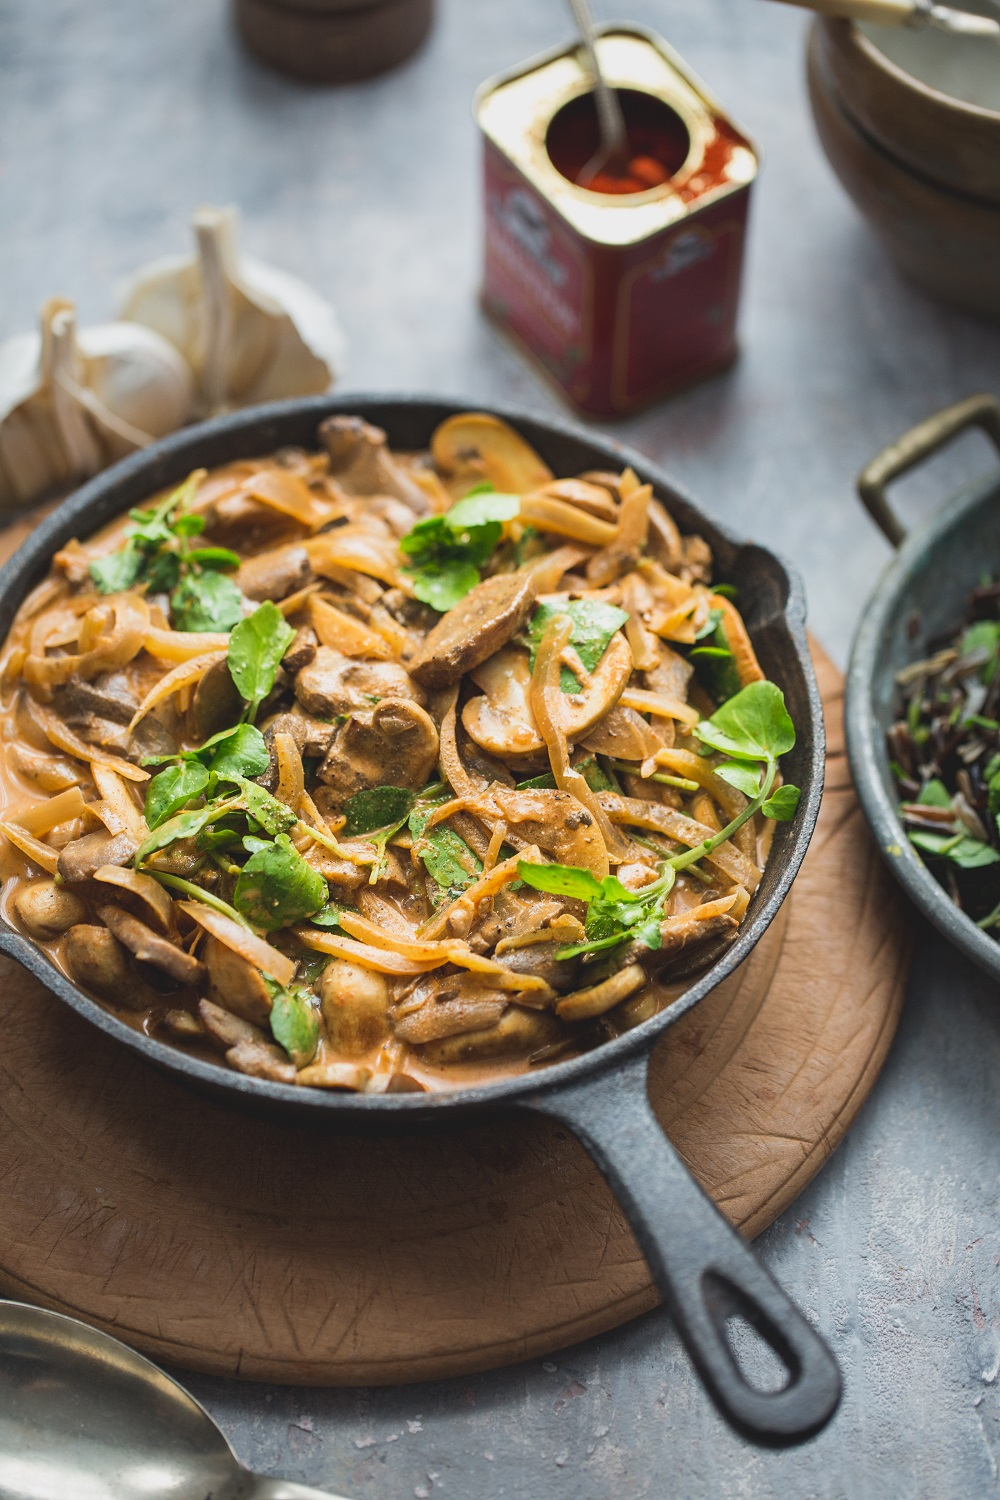 Chestnut Mushroom And Watercress Stroganoff With Giant Wild Rice